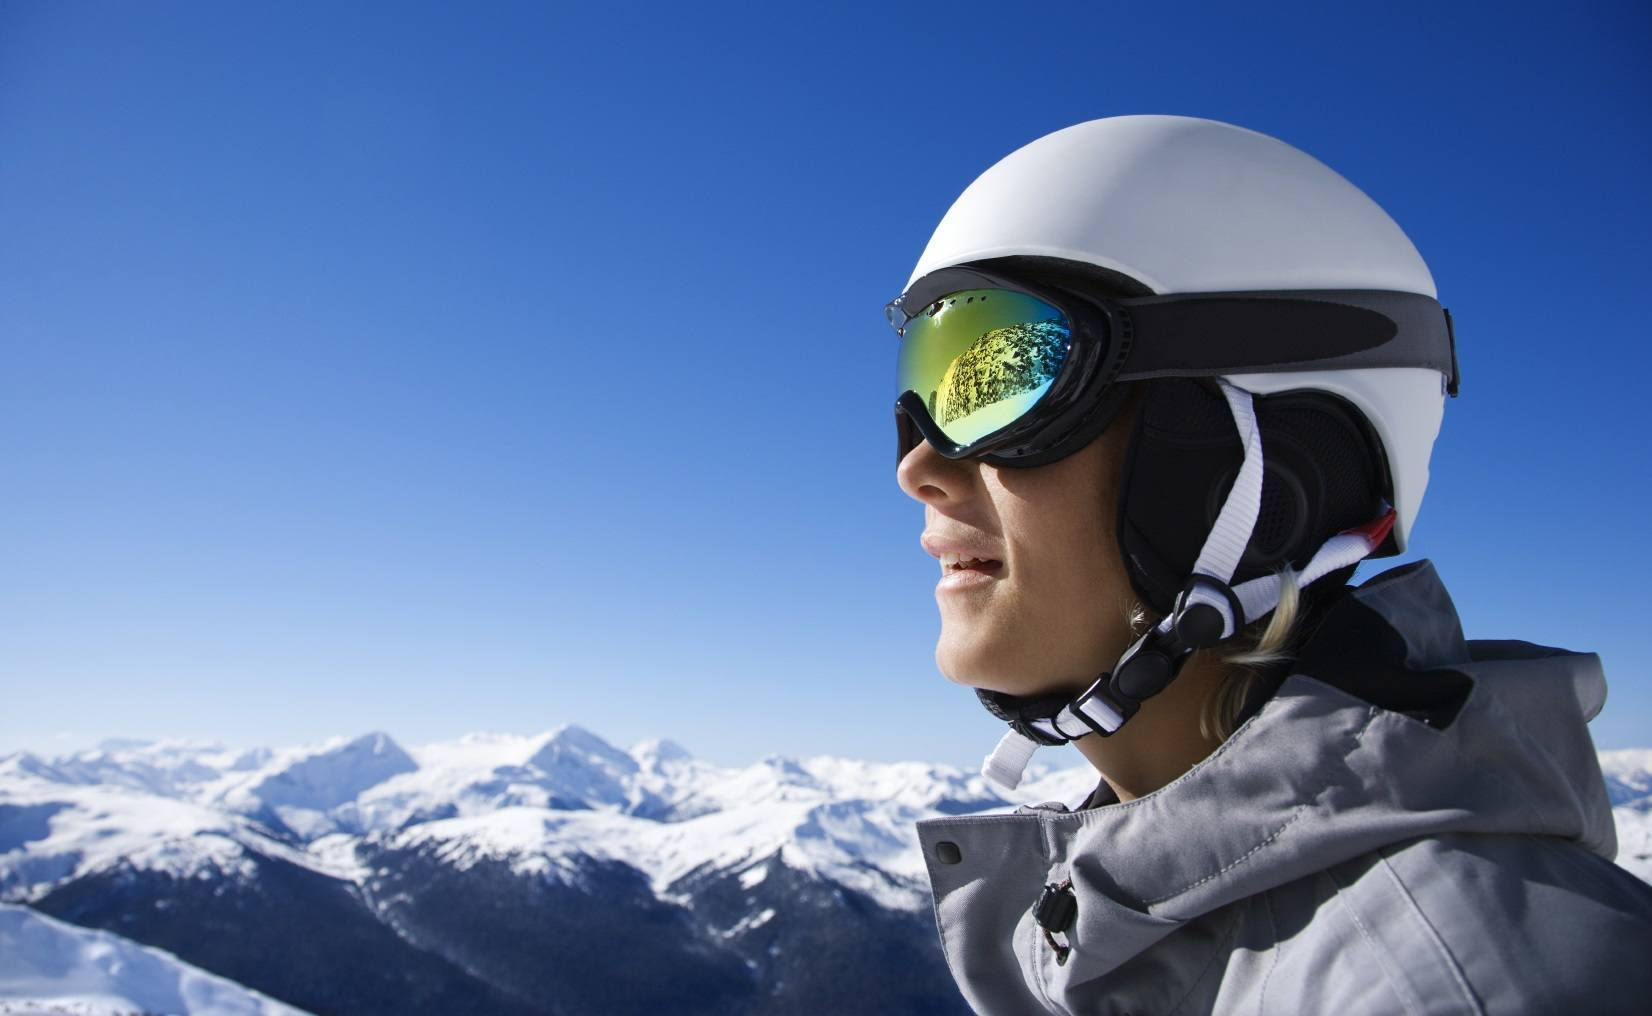 Best Ski Goggles 2016: Swappable Lenses, Anti-Fog, HD Vision, Smart Displays, & More